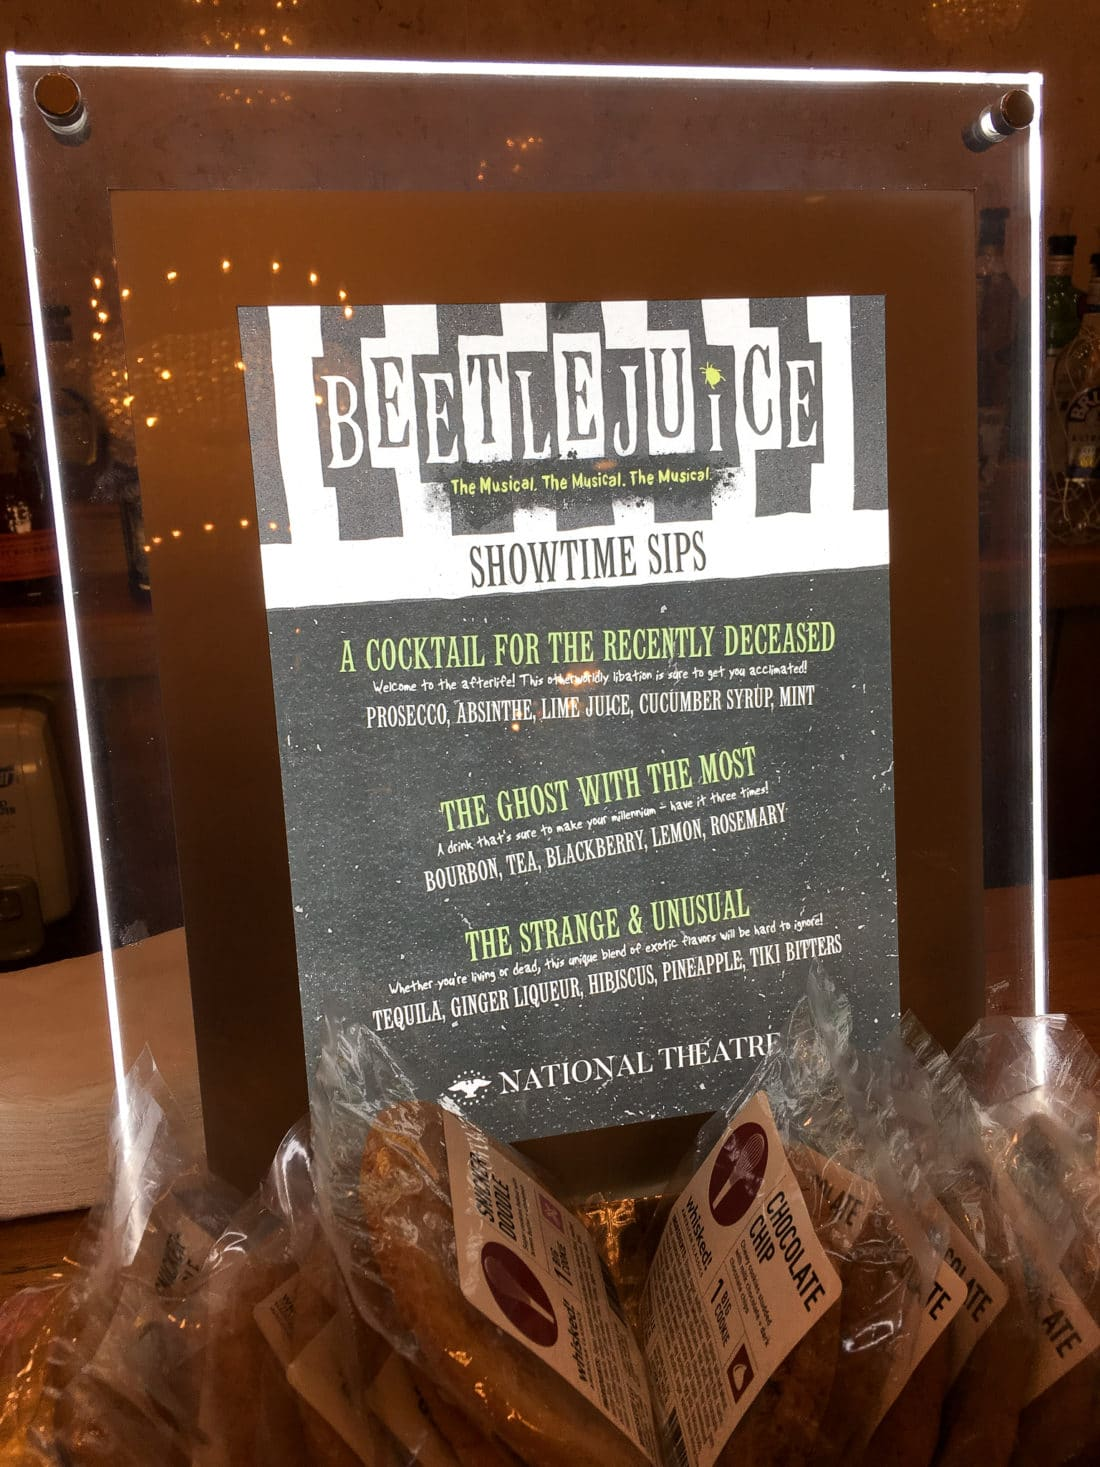 Beetlejuice The Musical Themed Drink Menu. Beetlejuice The Musical will be showing at the National Theater in DC Now till Nov 18, 2018. Follow this Raunchy humorous musical as you explore the world of Beetlejuice even deeper than the previous movie showed.